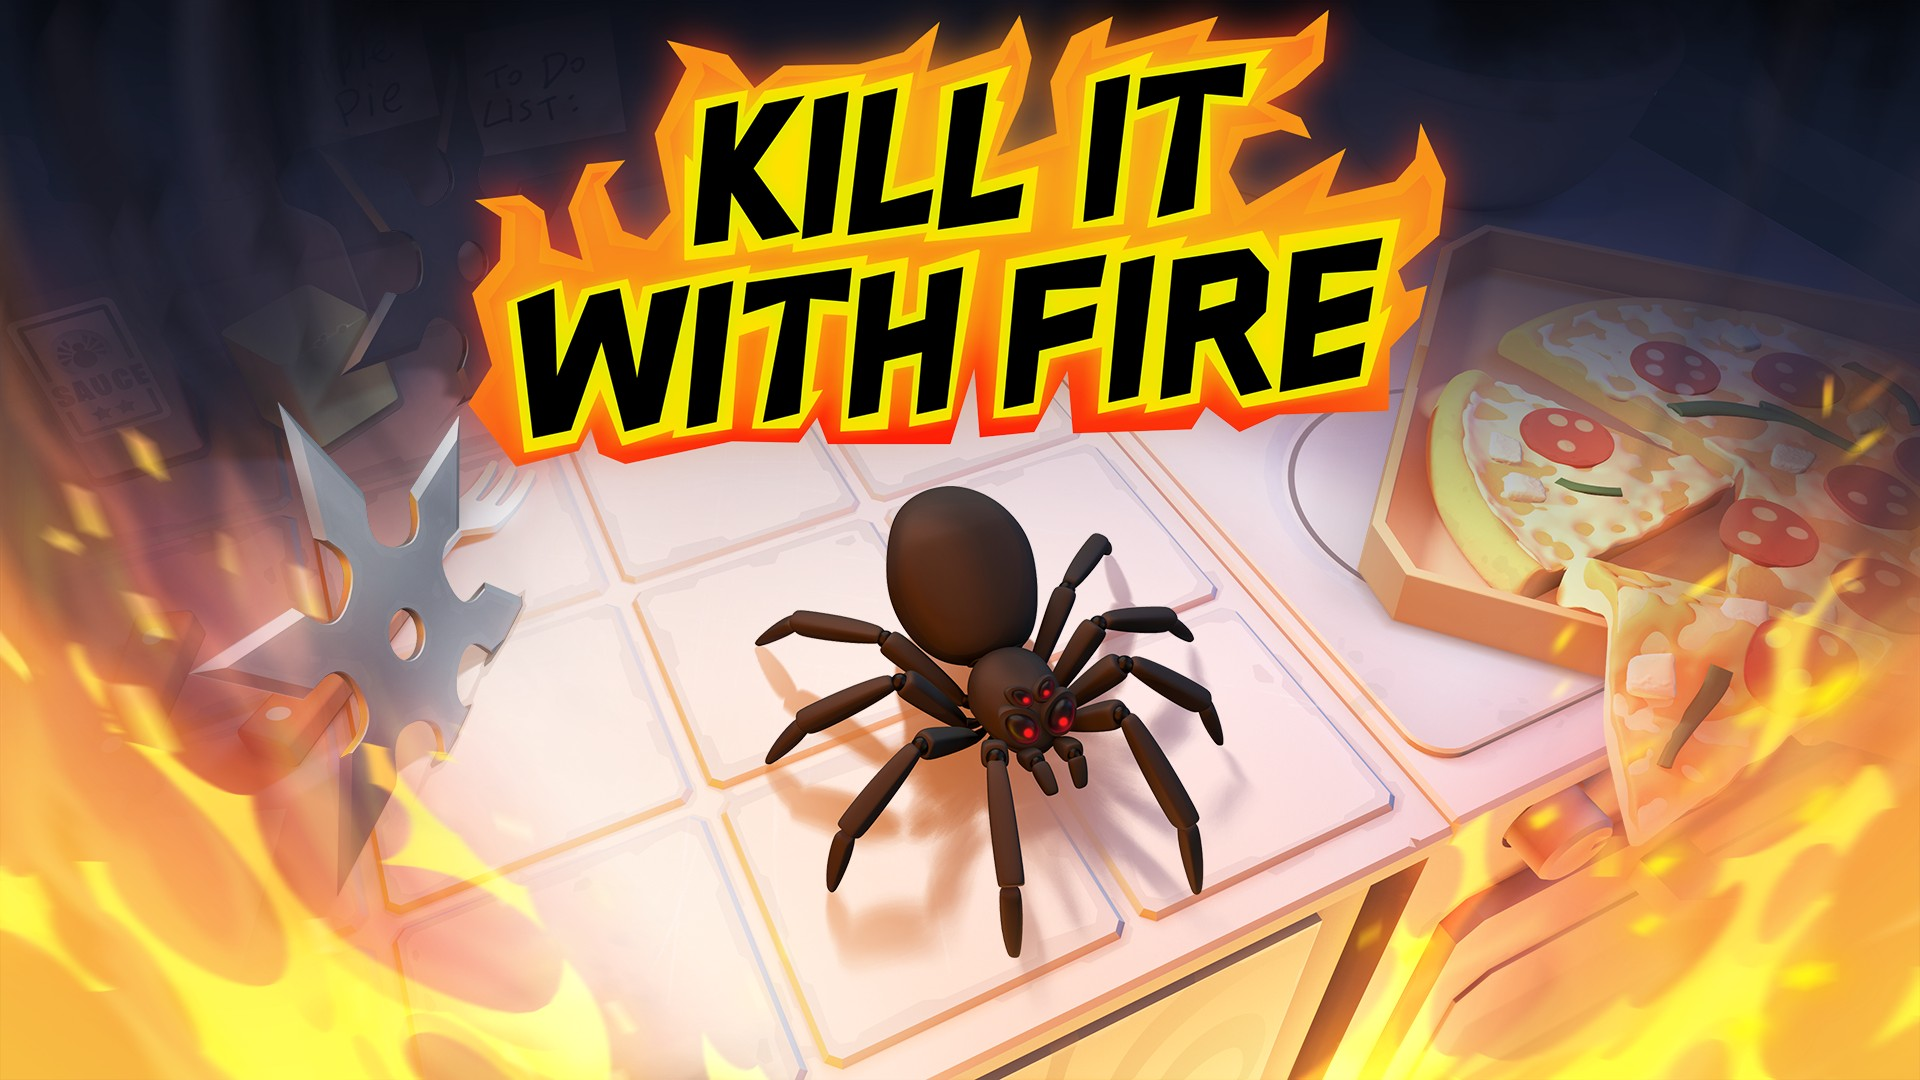 Video For Kill It With Fire Available Now on Xbox One